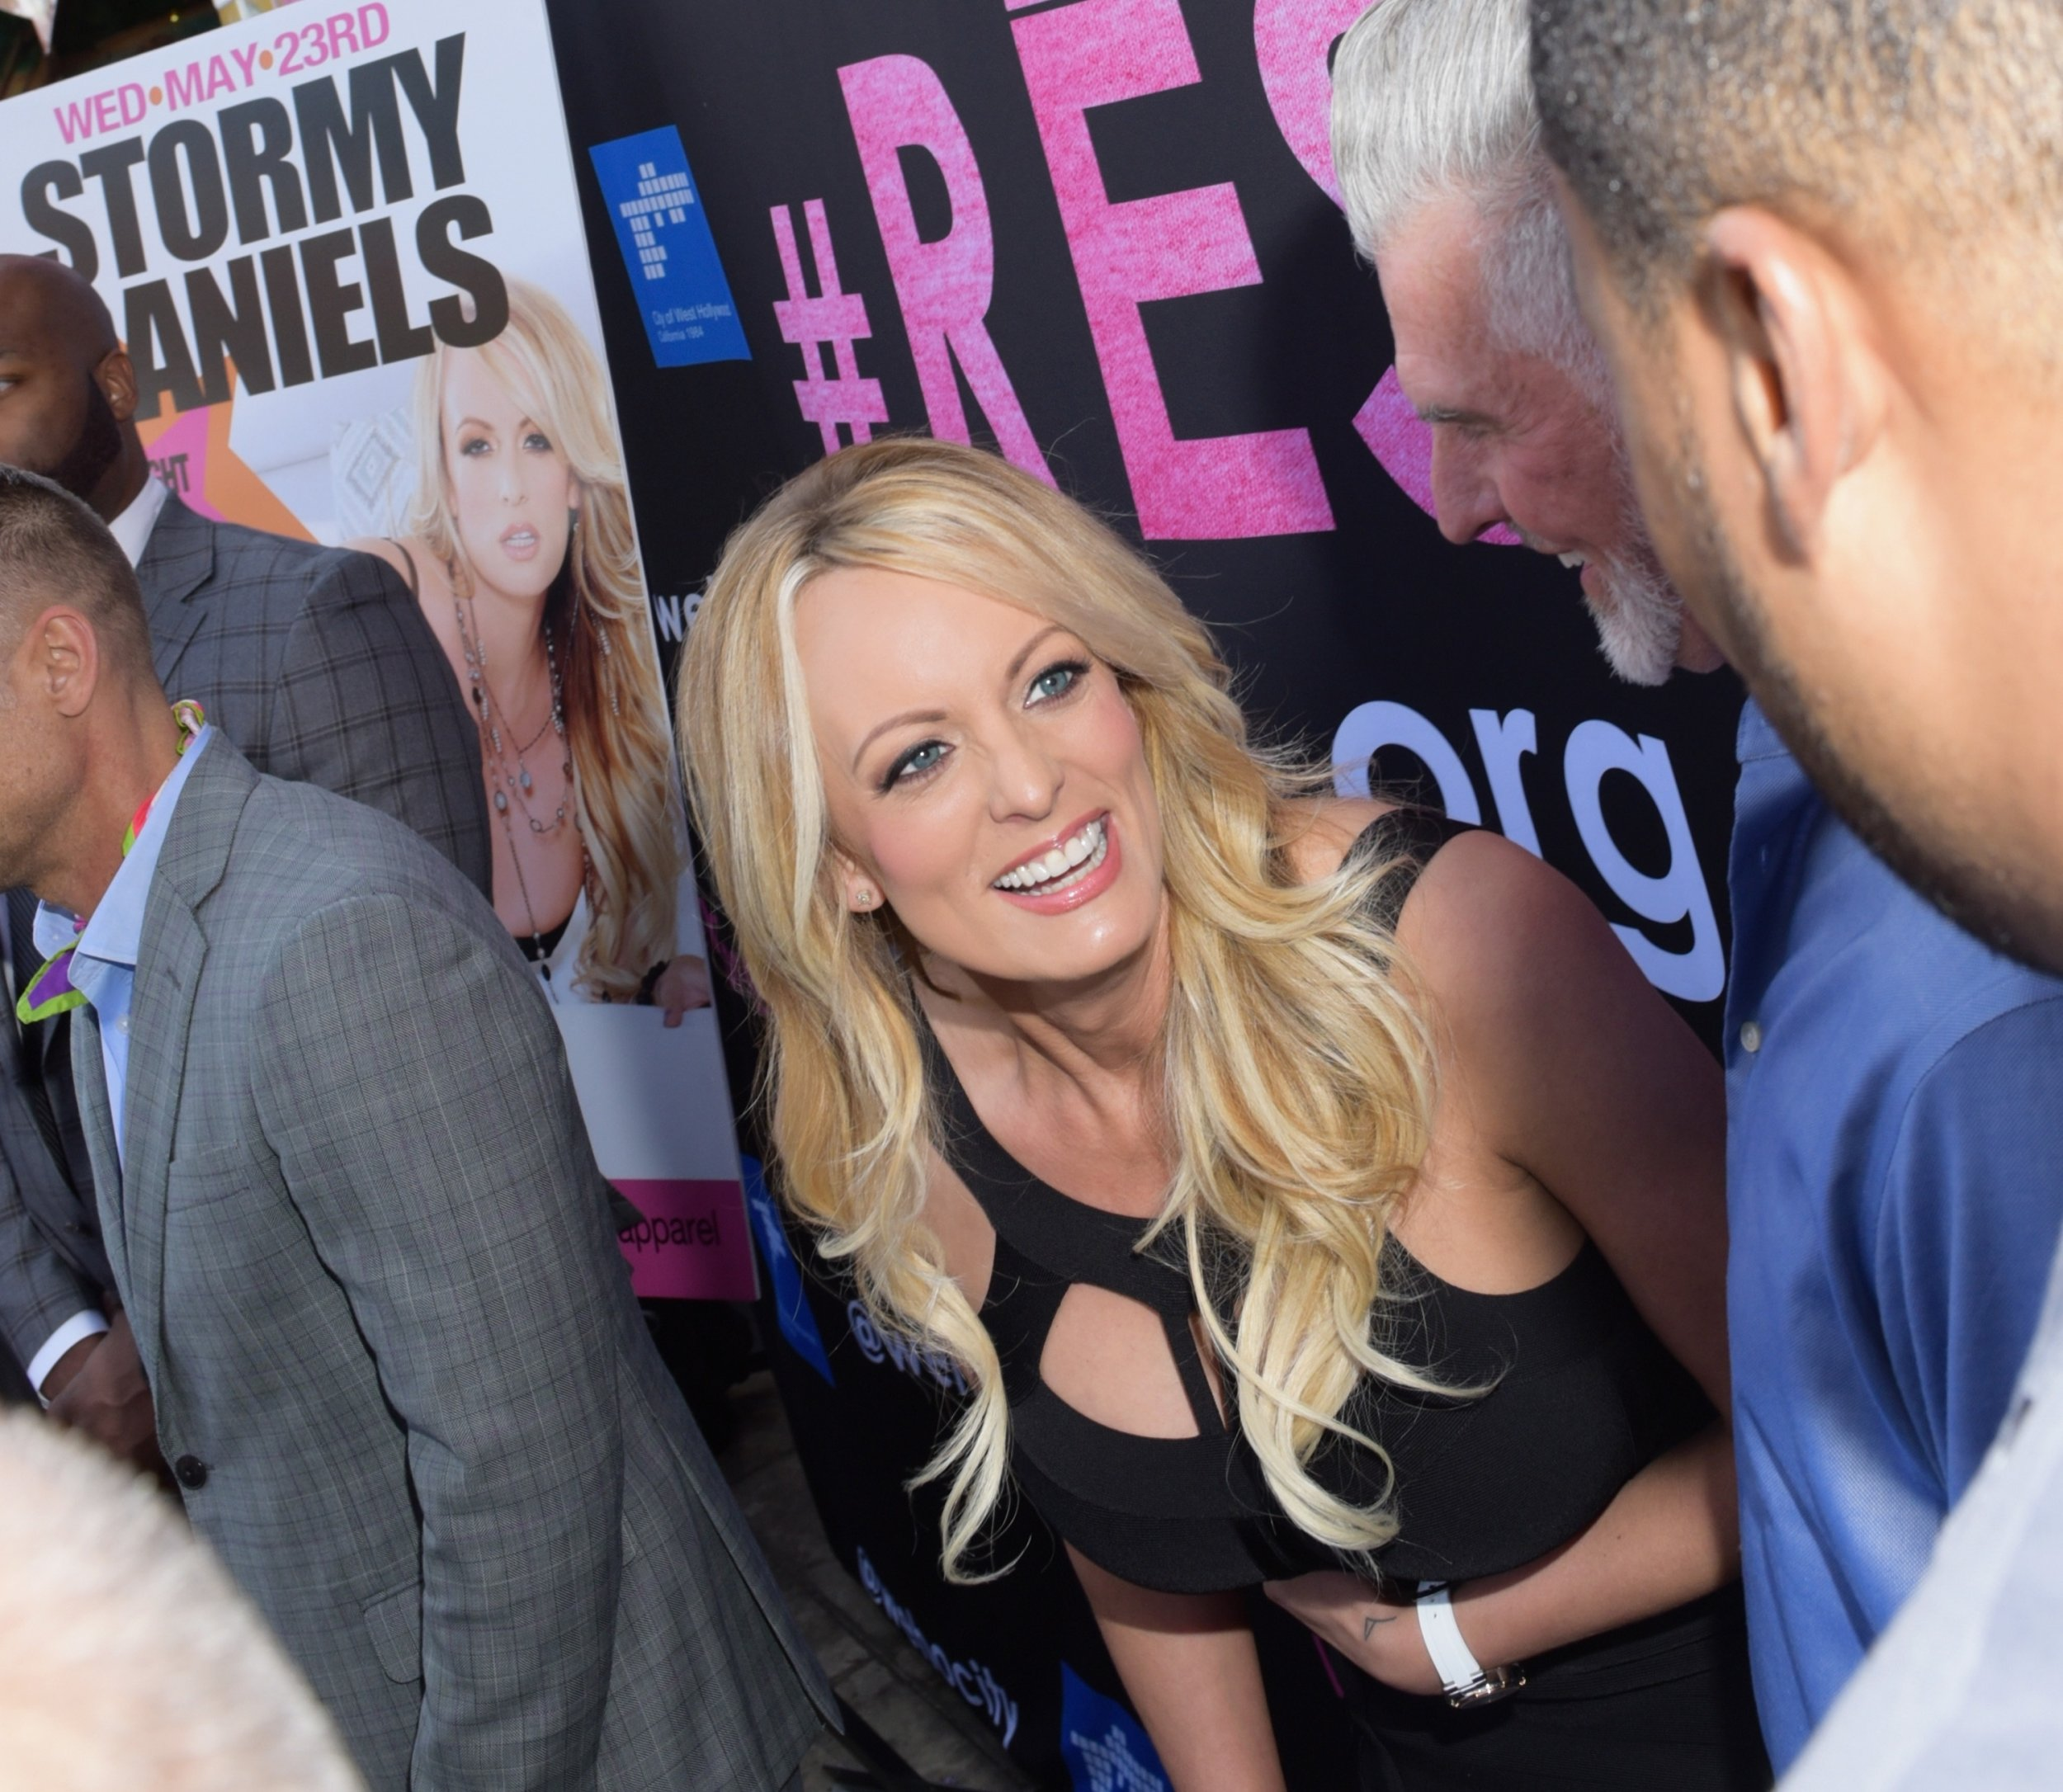 Stormy Daniels Celebrity Big Brother